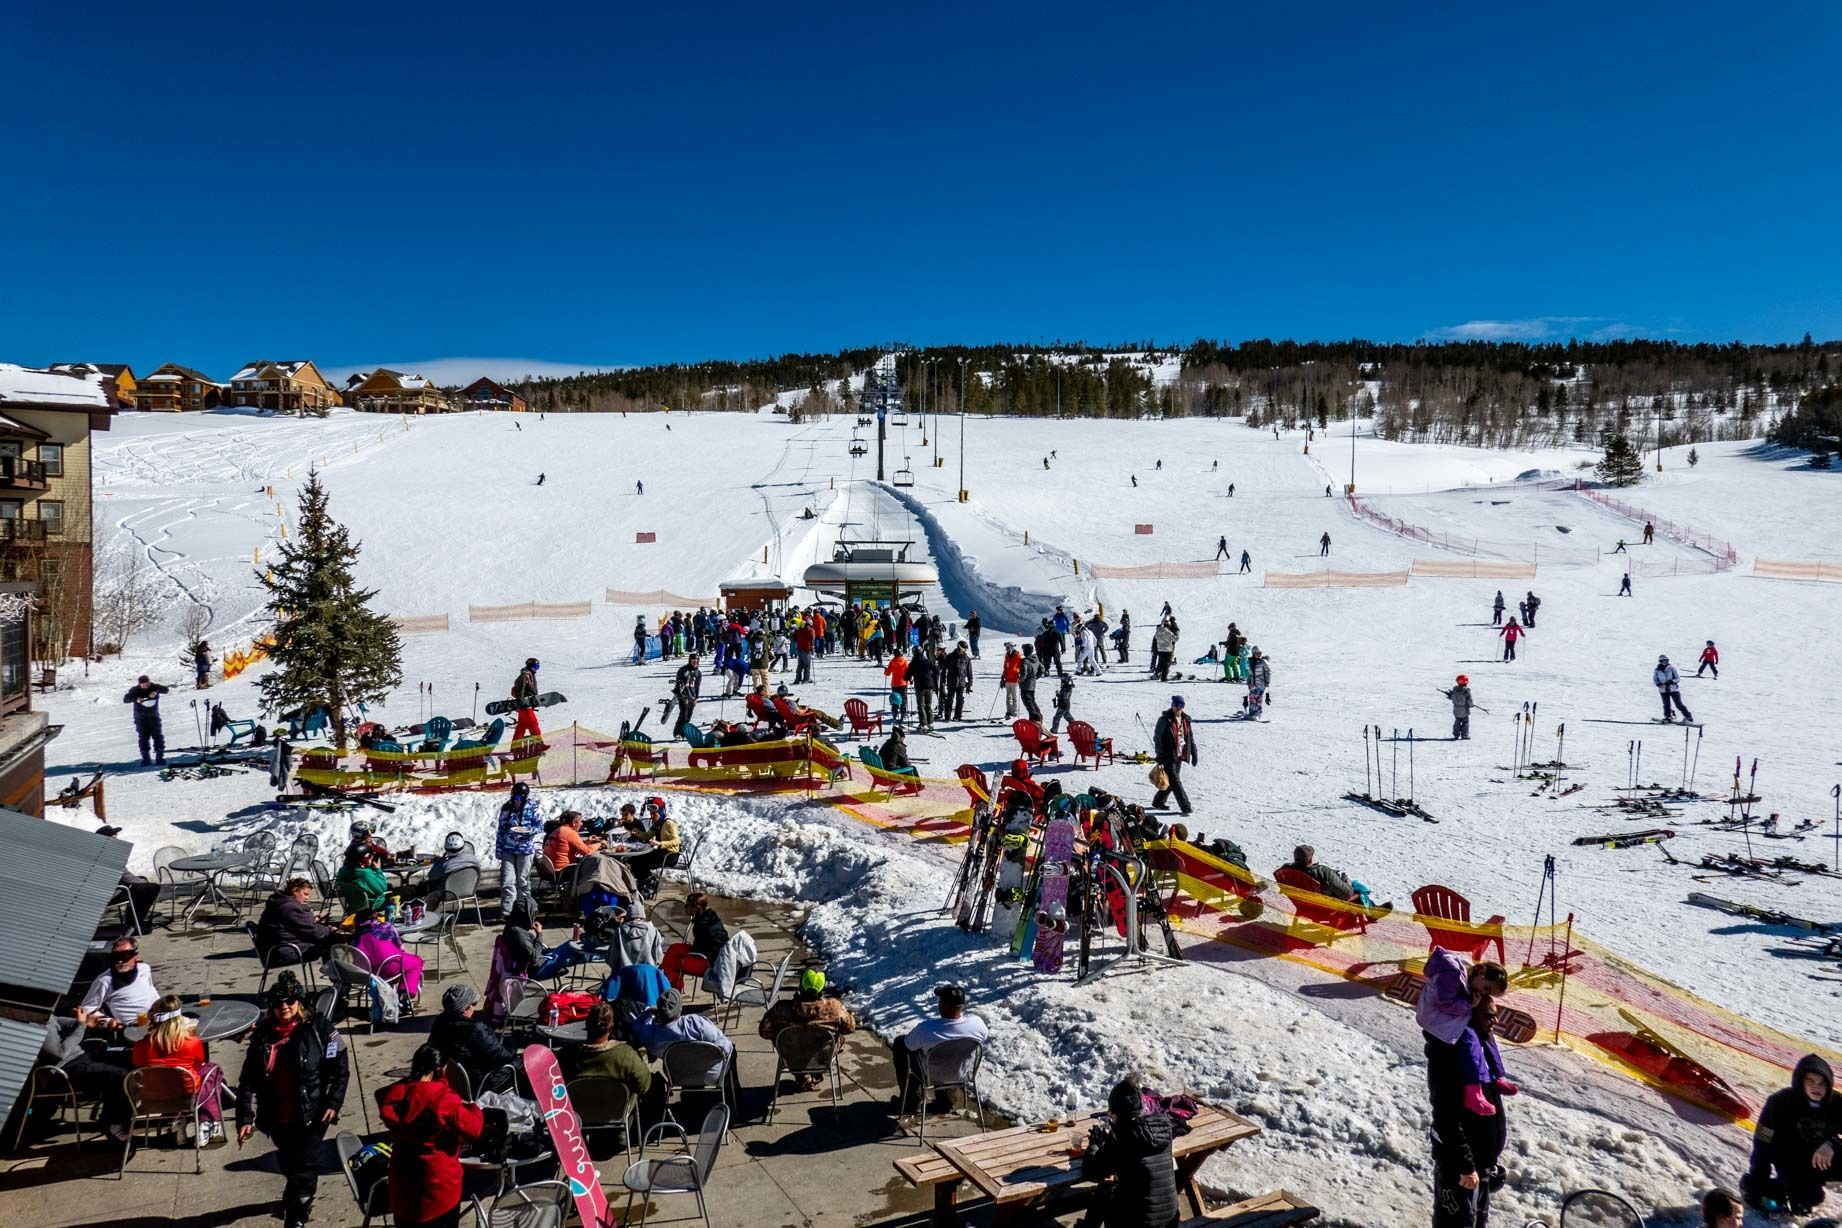 View from the base at Granby Mountain Ranch ski area